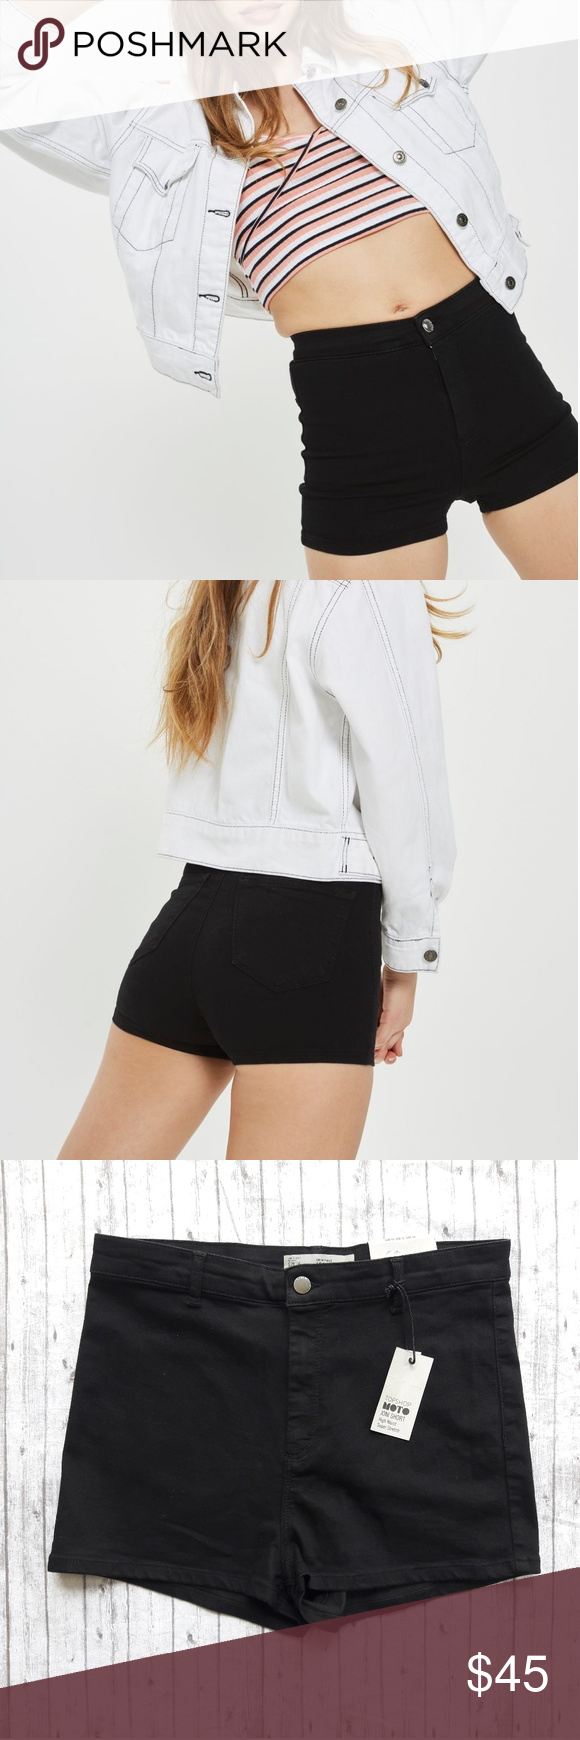 f72bc12b93 Topshop Petite Black Joni Shorts PETITE high rise shorts in super stretch  denim fabric. Based